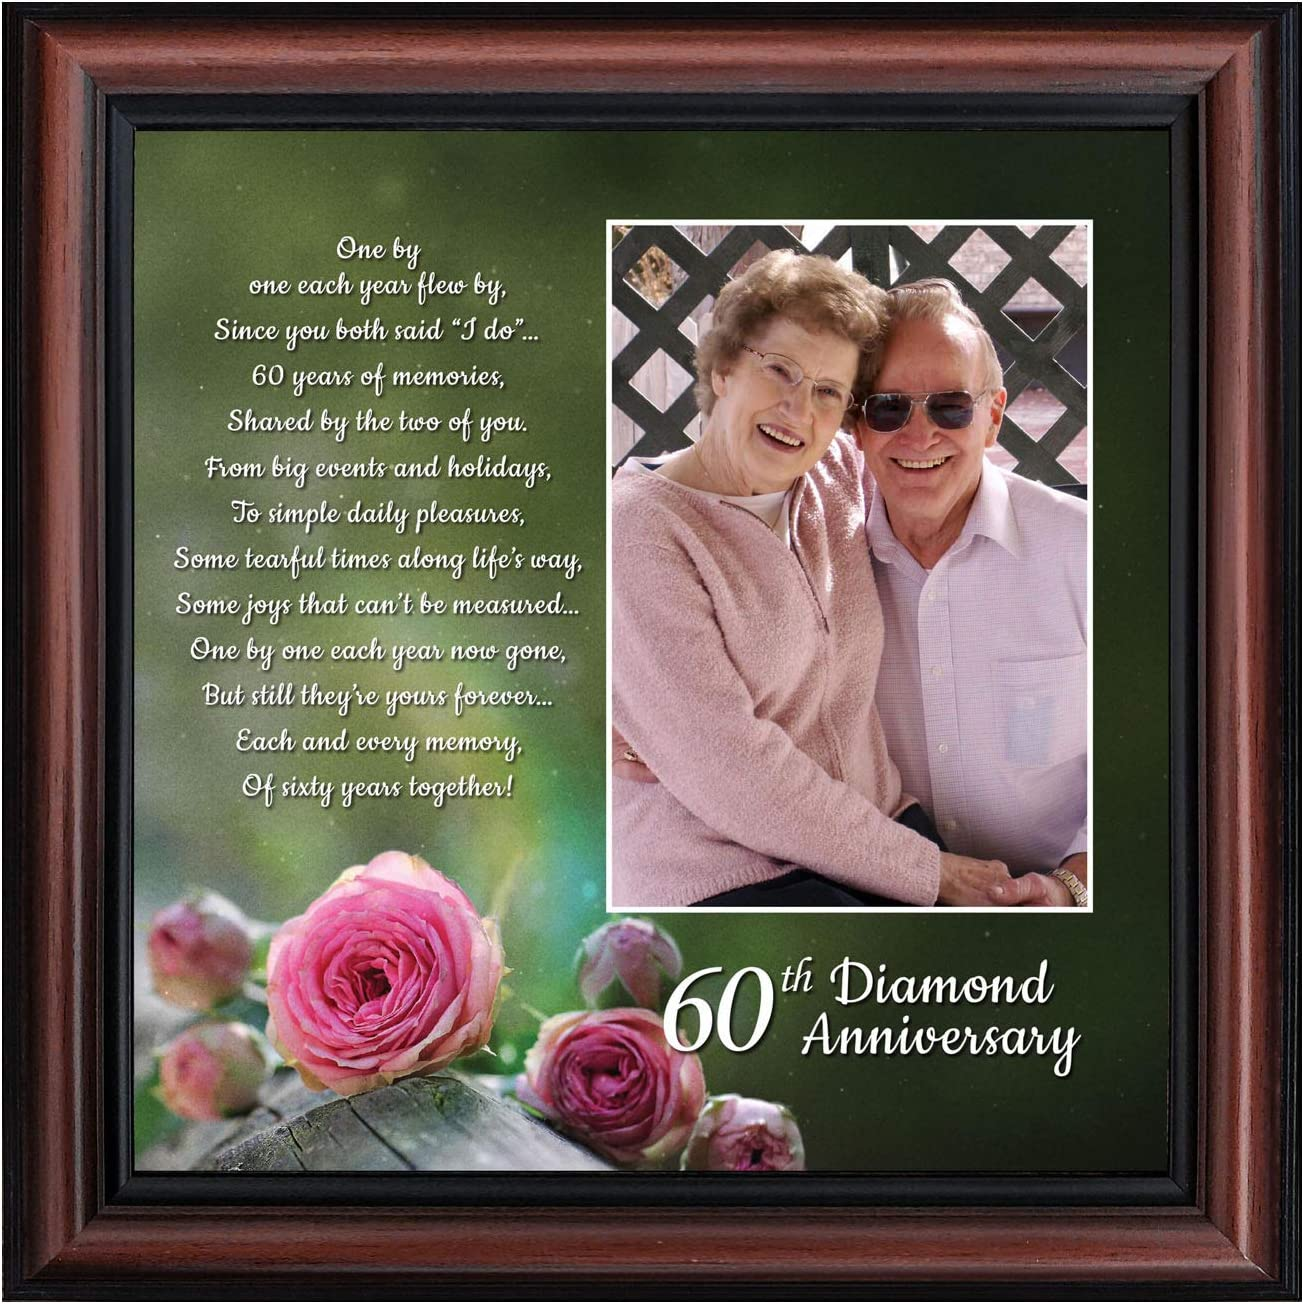 Crossroads Home Décor 60th, Diamond 60th Wedding Anniversary Grandparents Gifts, for Grandparents, 60th Anniversary Card for Parents, Picture Frame for Couples, 6310W